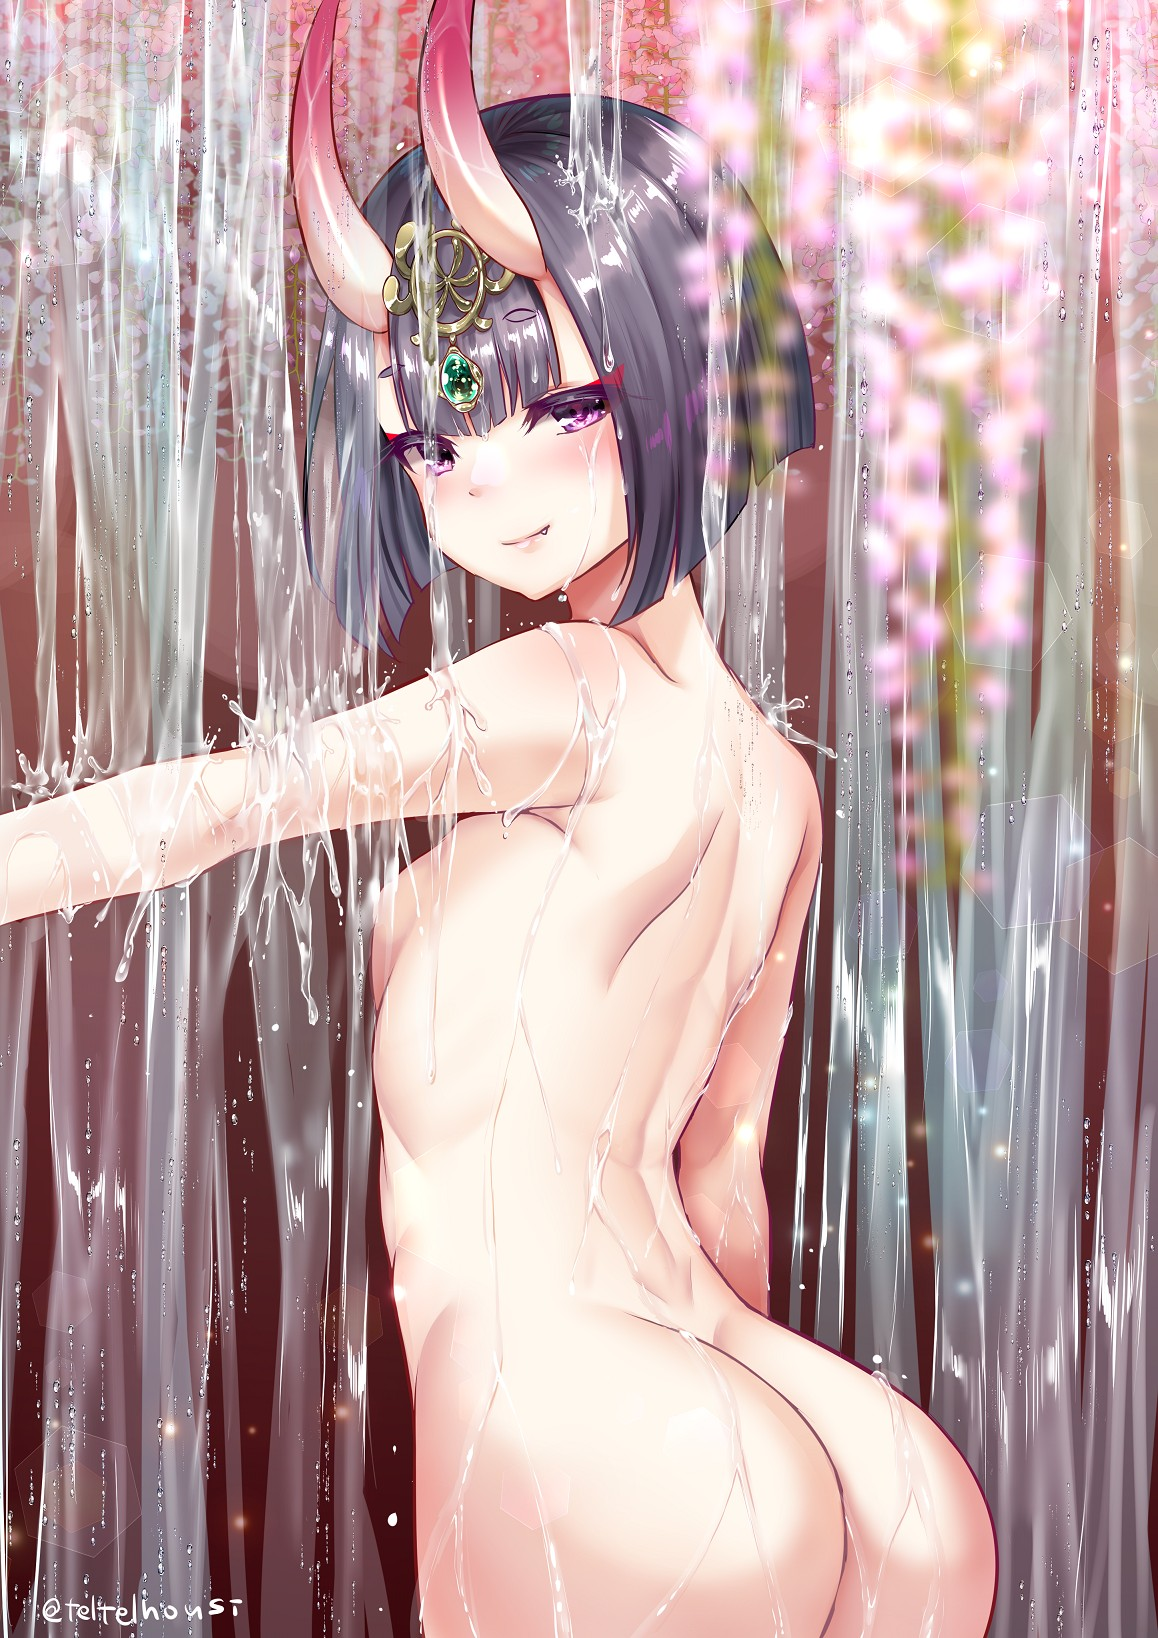 Hentai Pictures Of Shuten Douji From Fate/Grand Order